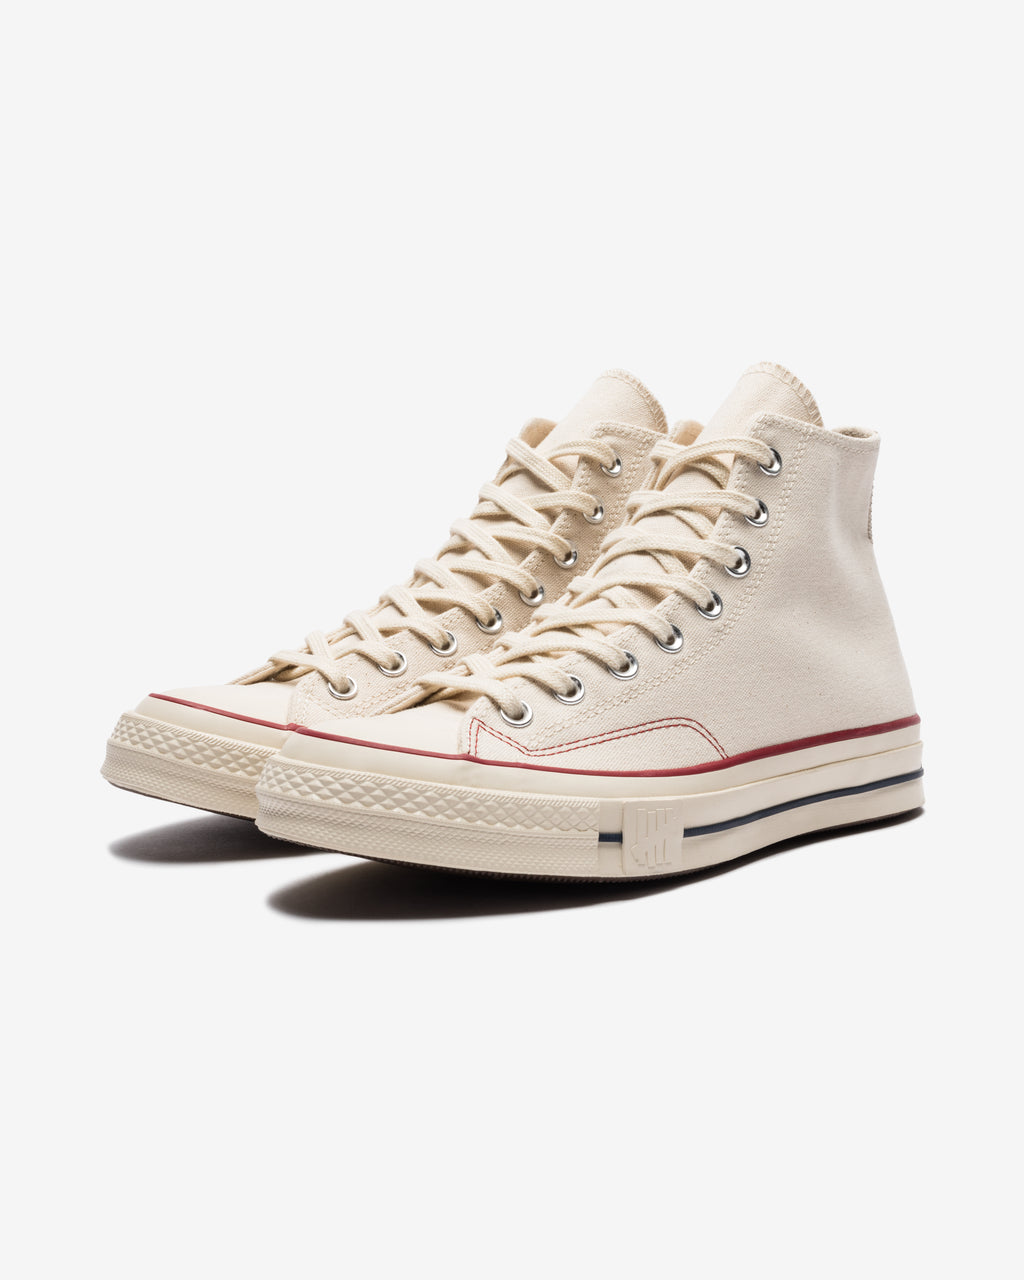 CONVERSE X UNDEFEATED CHUCK 70 – Undefeated